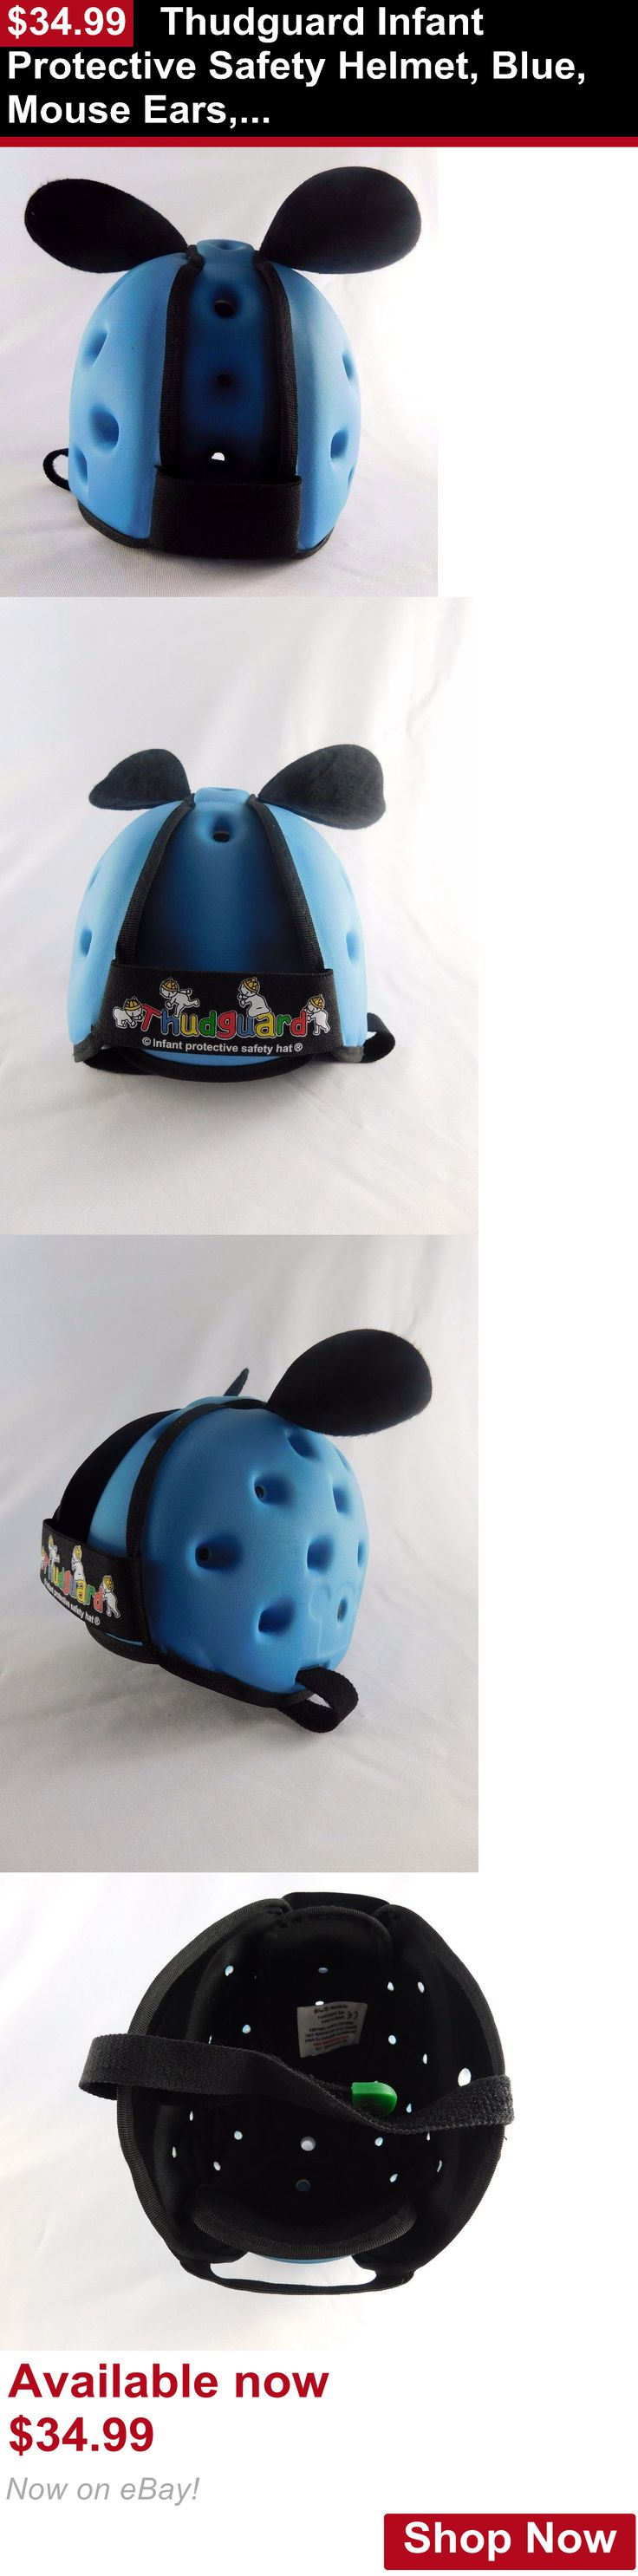 Other Baby Safety and Health: Thudguard Infant Protective Safety Helmet, Blue, Mouse Ears, Os, No Packaging BUY IT NOW ONLY: $34.99